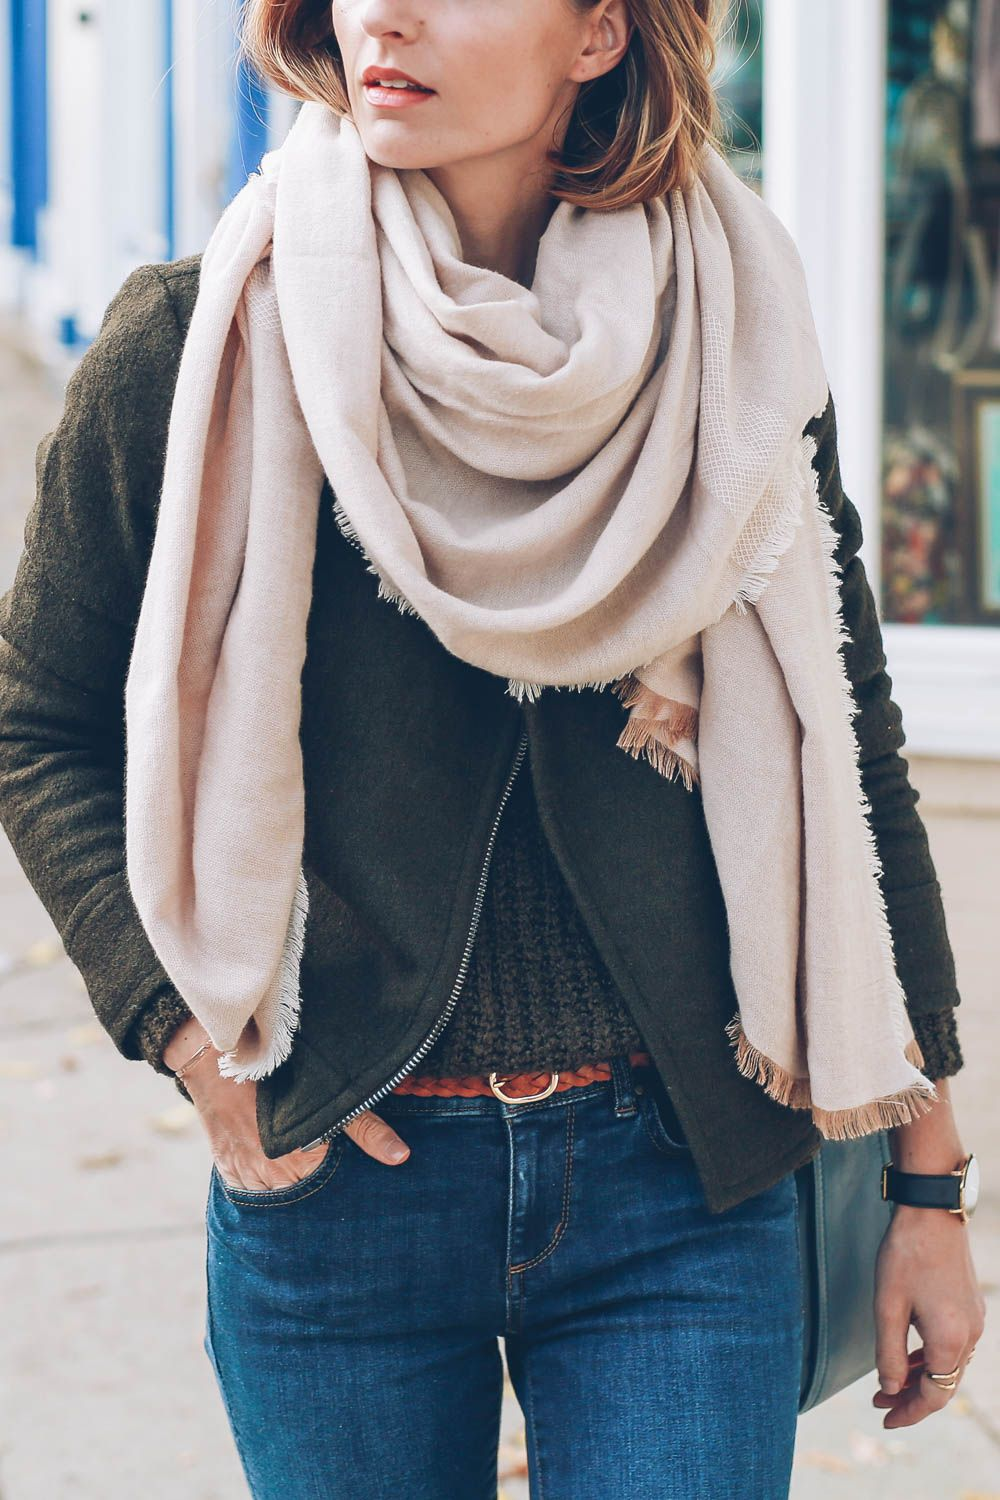 Jess Kirby wearing a cozy blanket scarf and wool moto